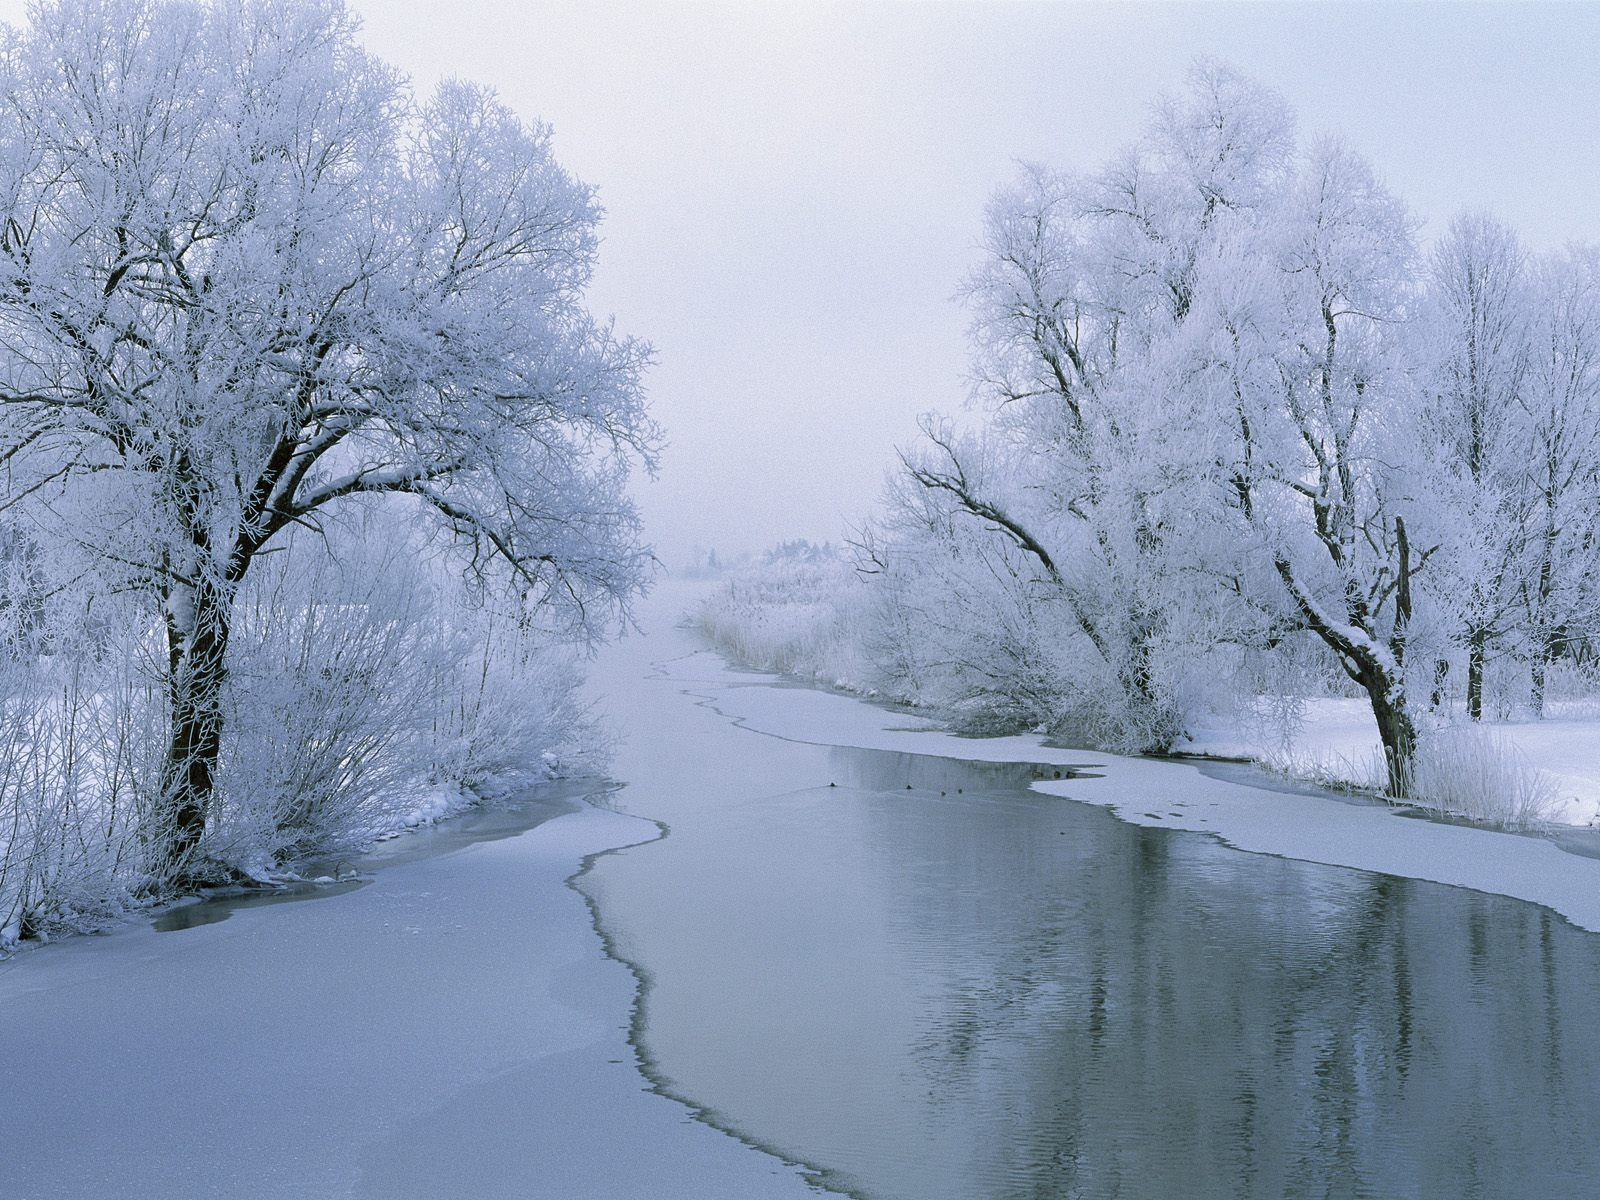 Beautifulwinter Scene Winter Nature Background Wallpapers On Beautiful Scenery